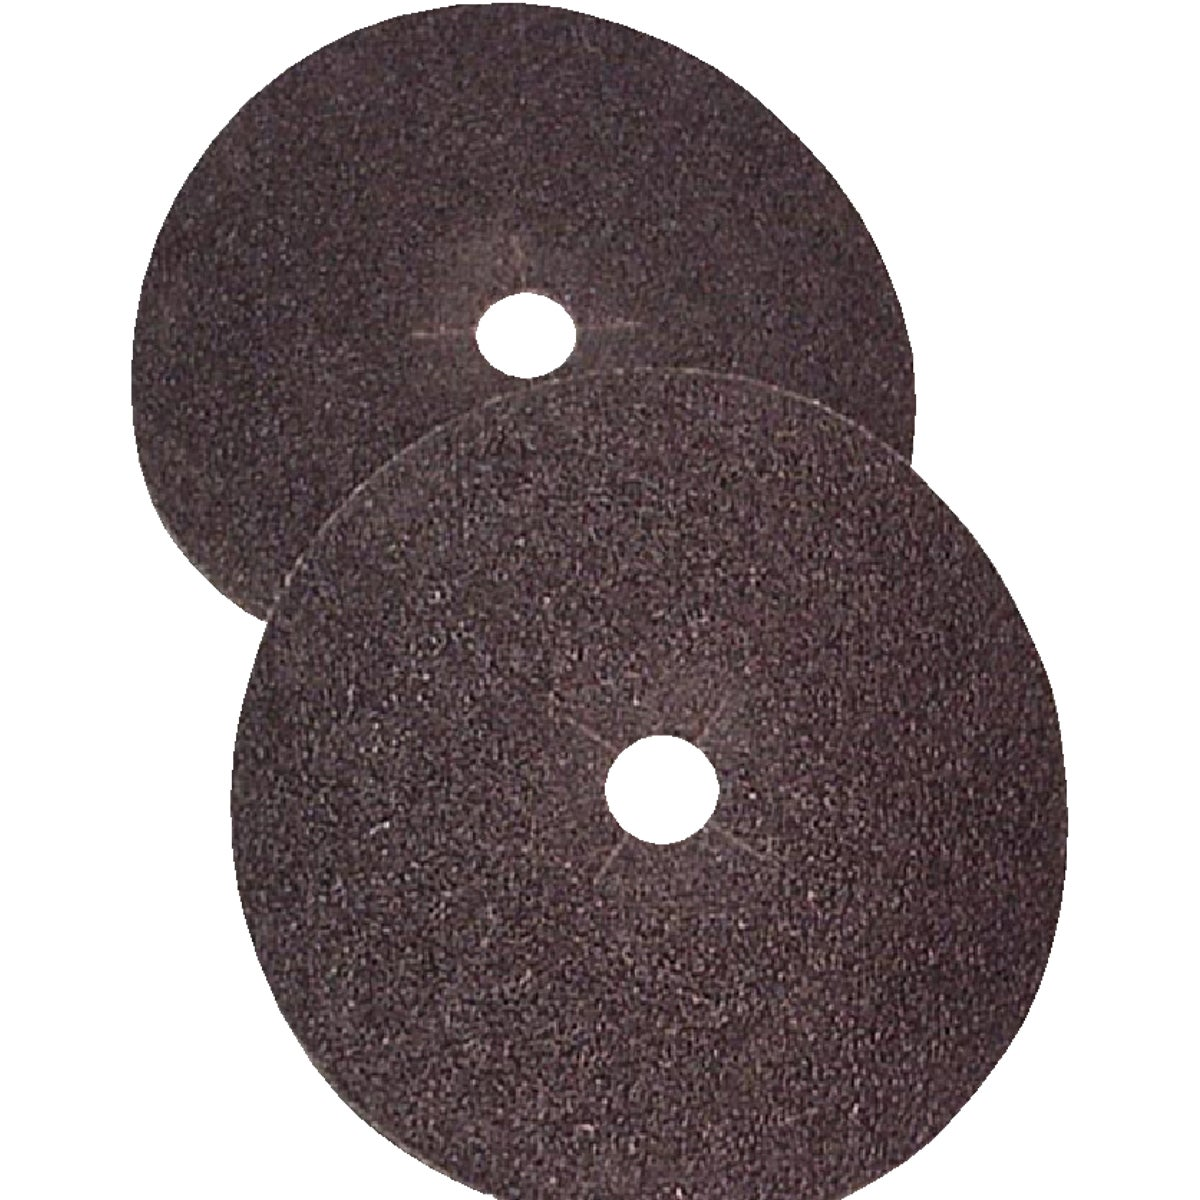 "5"" 24G FLR SANDING DISC - 006-850224 by Virginia Abrasives"